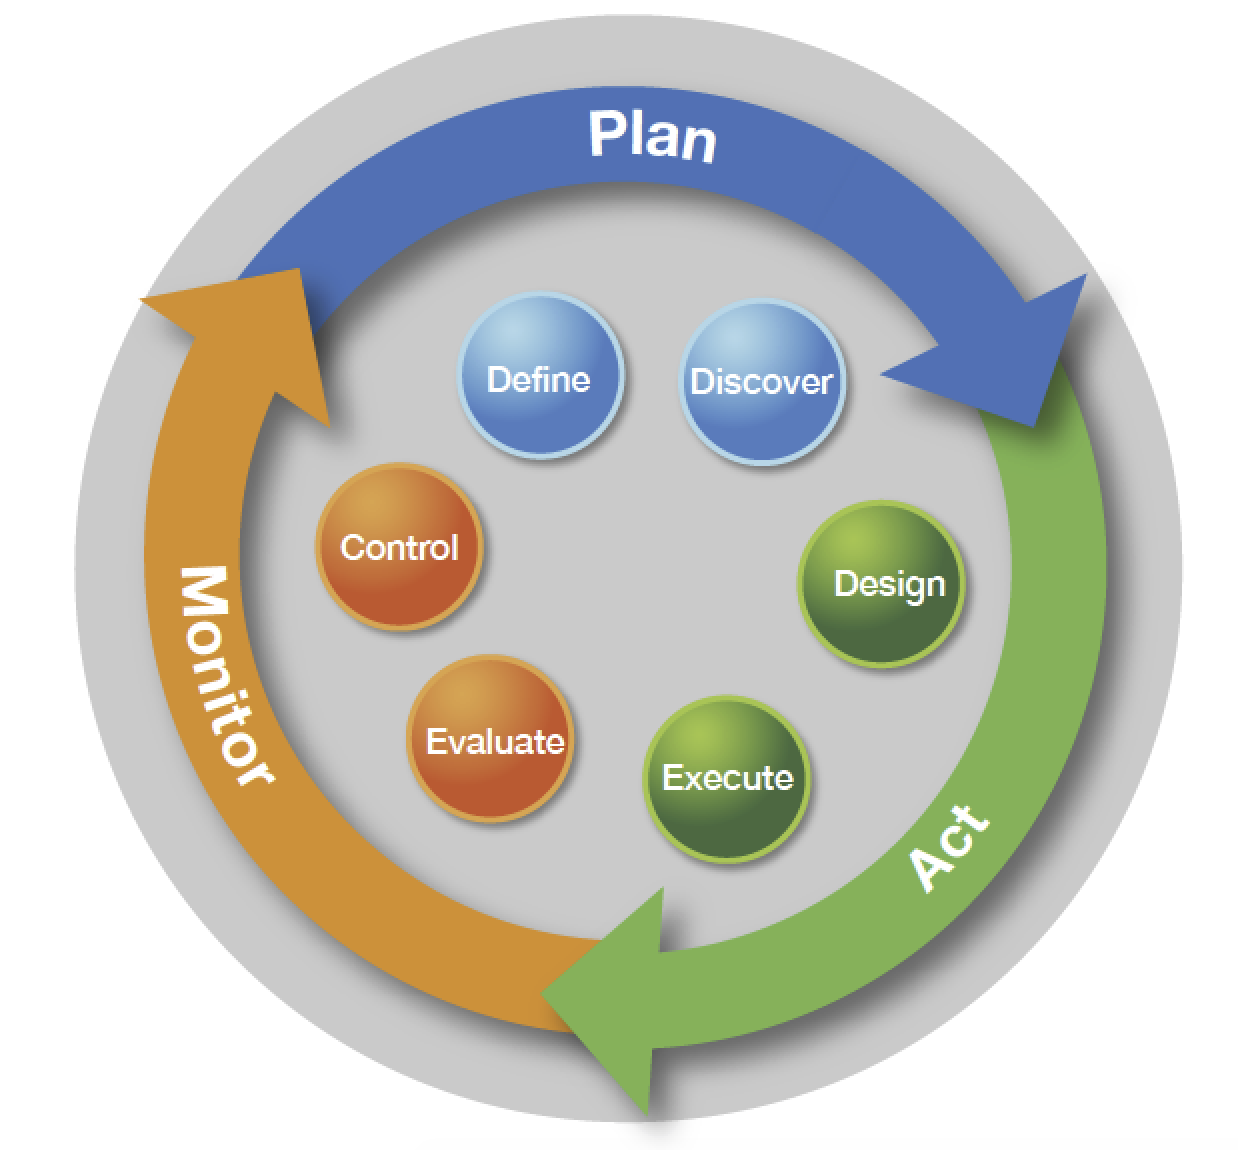 Figure 3. The three stages of the SAS Data Management methodology are plan, act and monitor.